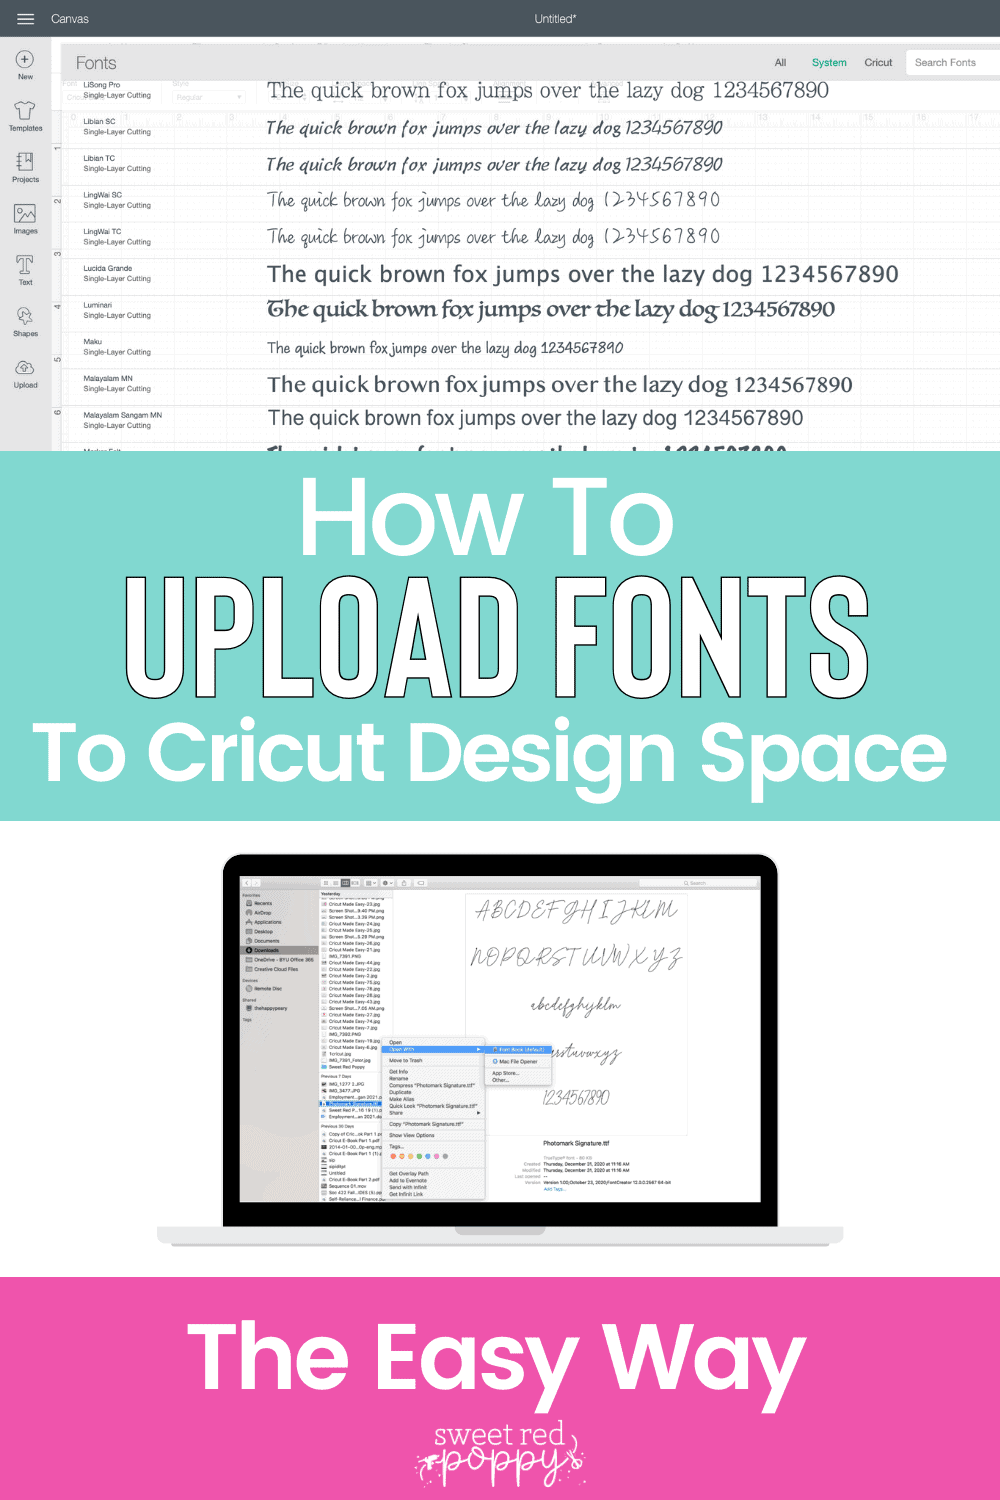 Learn How to Find High-Quality Fonts, Download a Font and Upload a Font to Cricut Design Space.